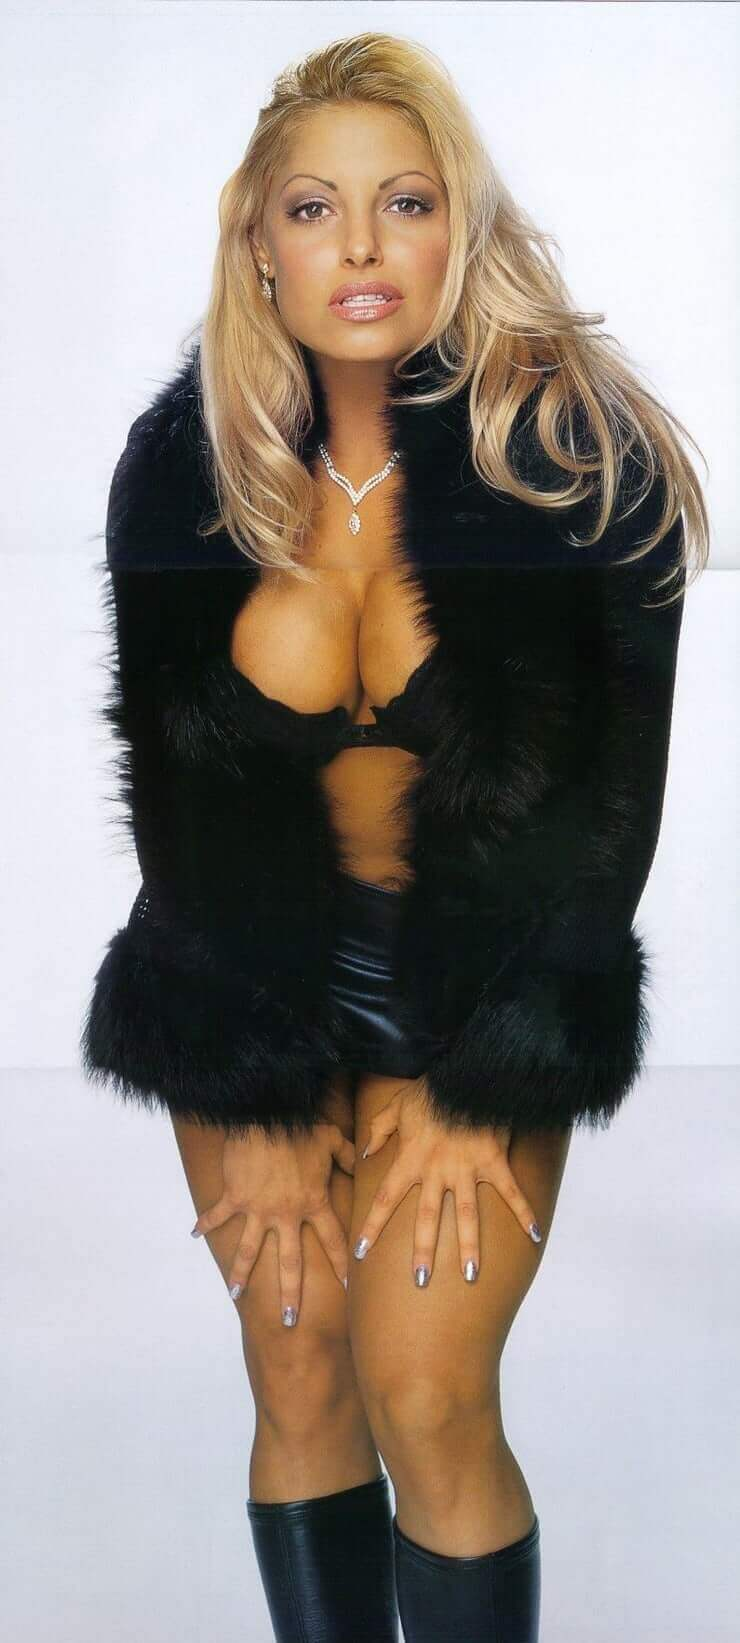 trish-stratus-cleavage-pictures-in-black-outfit